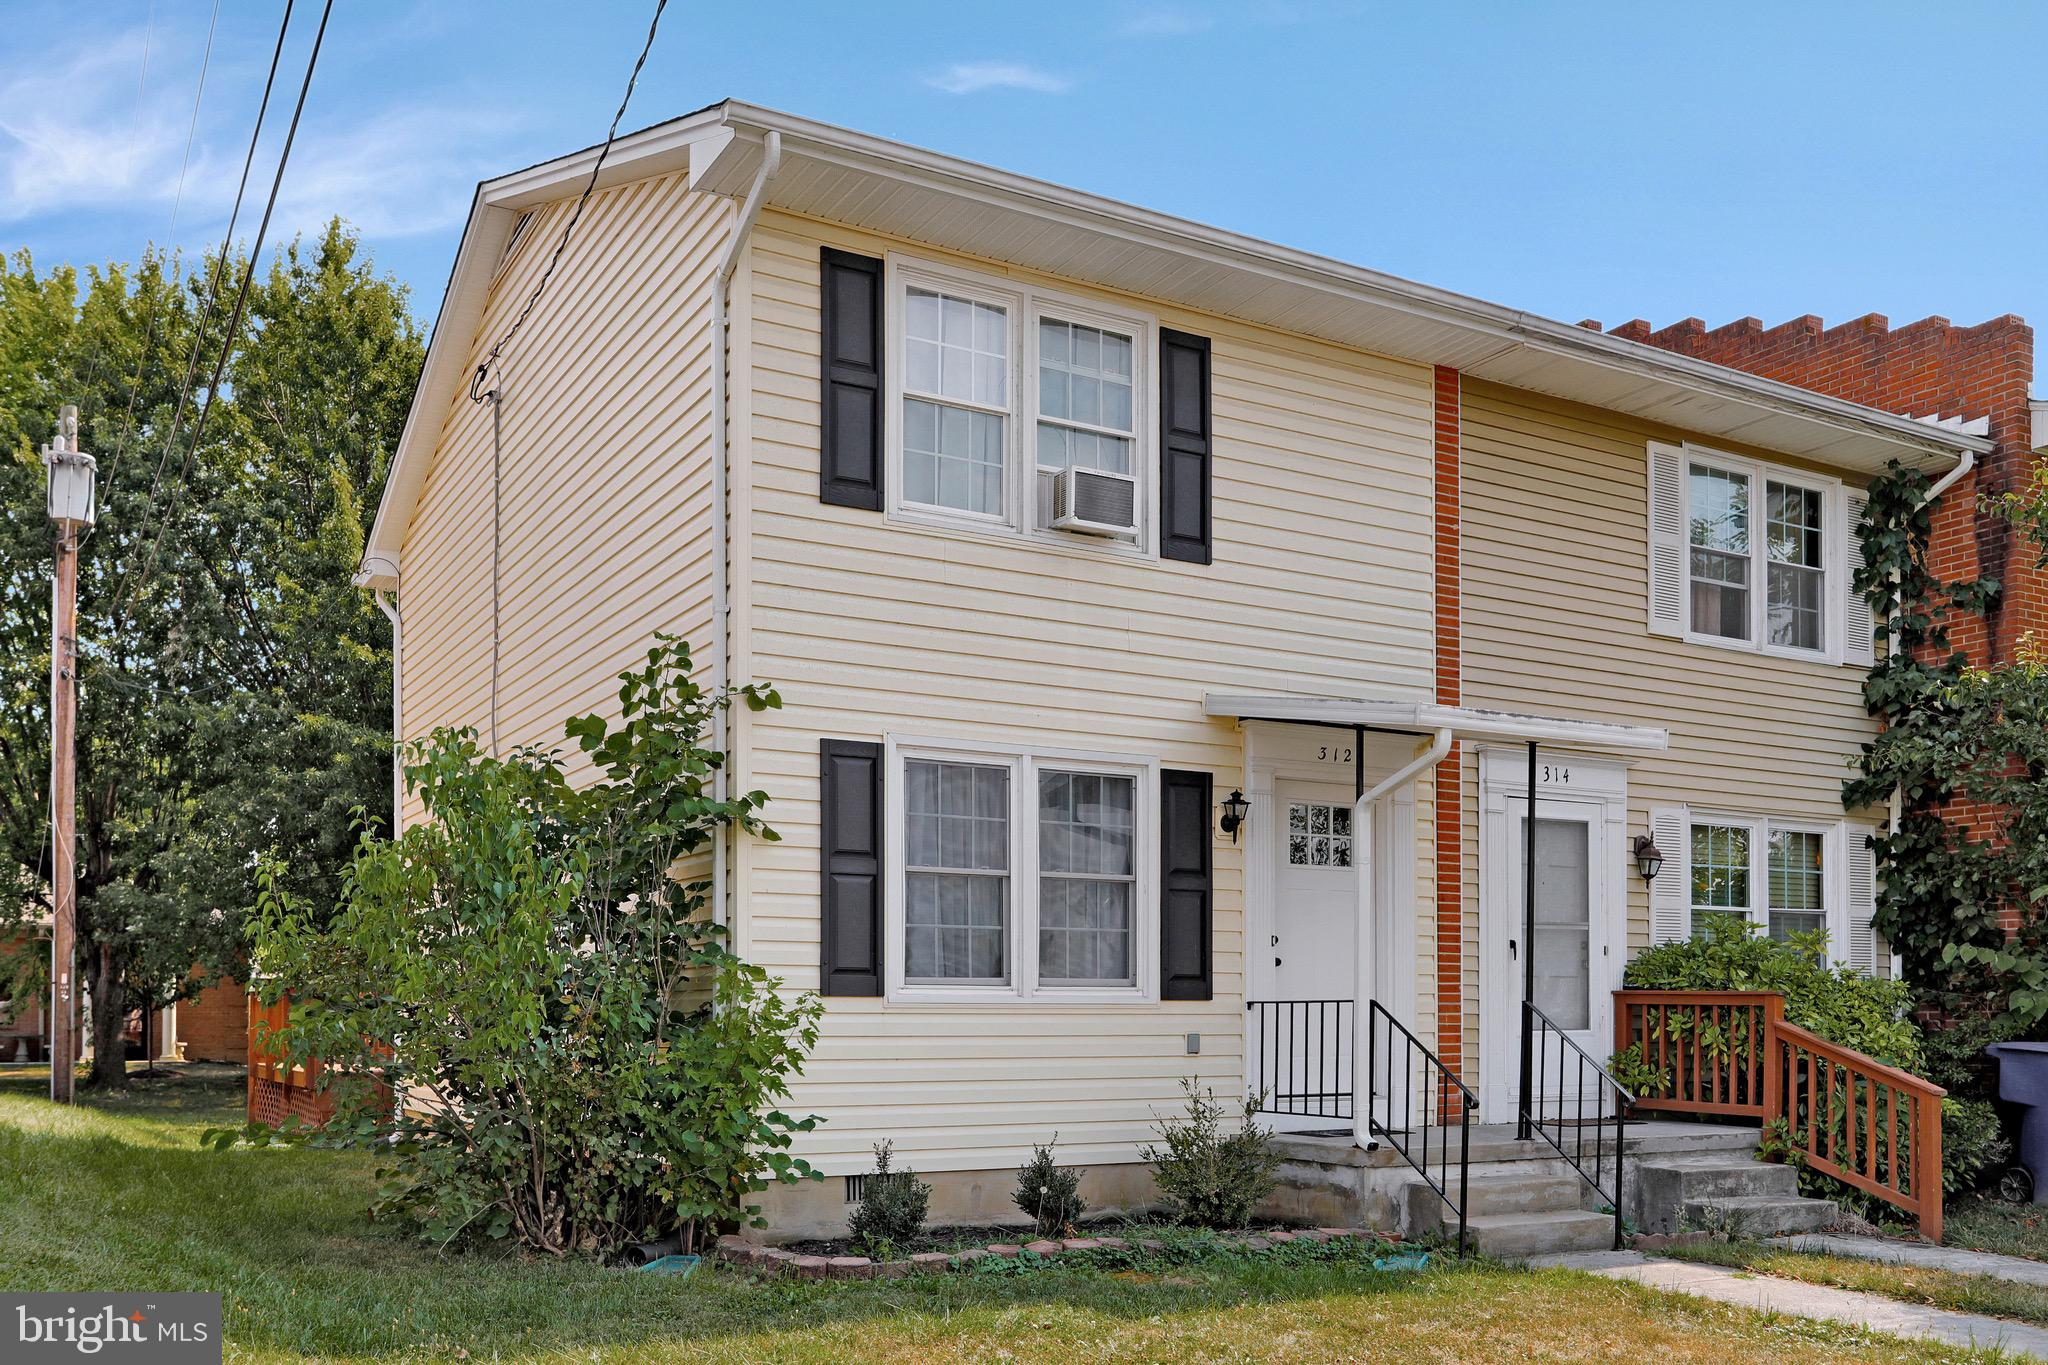 Well-Kept & Recently Updated/Upgraded 2-Story Townhouse End Unit.  Main Level: Living Room, Half Bathroom with Laundry Hookup, Picture-Perfect Kitchen with Table Space, and Sunroom/Dining Room with Rear Deck Access Door.  Upper Level: 2 Large Bedrooms with Full Bathroom in Hallway.  NEARBY ATTRACTIONS: 0.2 Mile to Chimney Fields Park, 1.4 Miles to Downtown Front Royal, 1.6 Miles to Riverton VDWR Boat Ramp, 2.3 Miles to I-66 Exit 6, 3 Miles to Entrance of Shenandoah National Park Skyline Drive, 3.1 Miles to Walmart at Riverton Commons & Target at Crooked Run Plaza, 3.2 Miles to Skyline Caverns, 24 Miles to Winchester, 26 Miles to Luray, and 73 Miles to D.C.